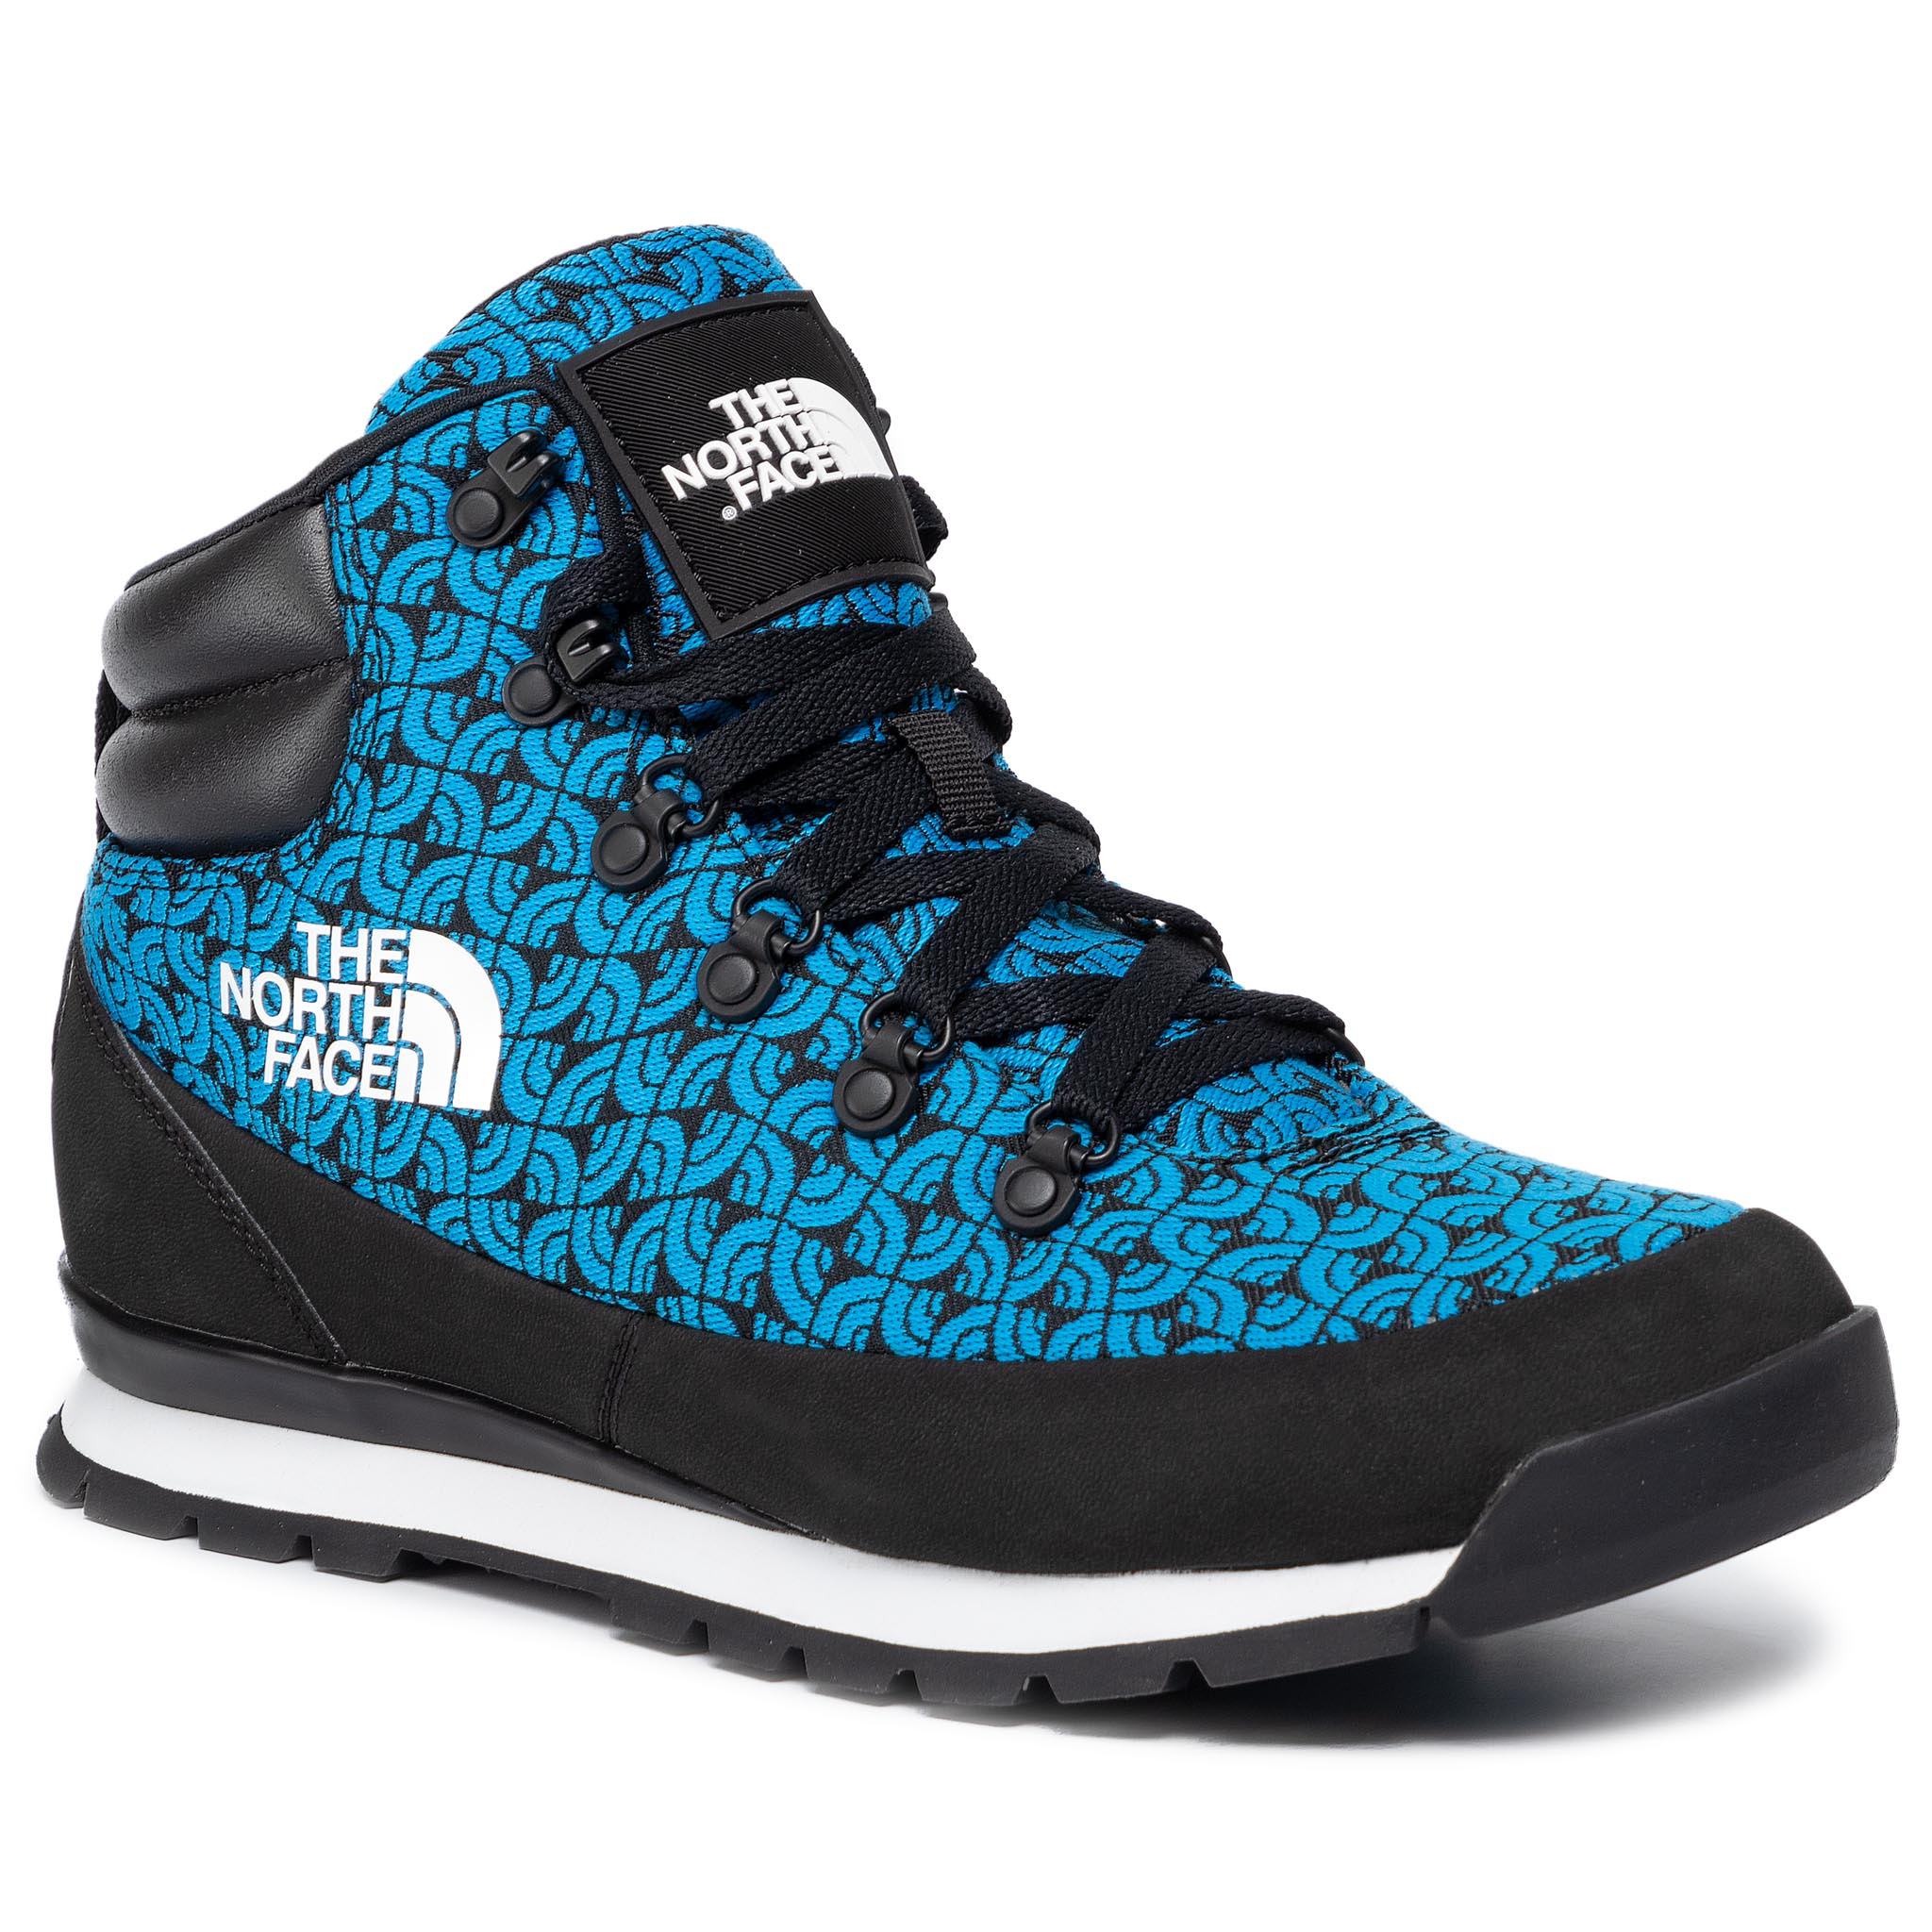 Trekkings THE NORTH FACE - Back To Berkeley Redux Remtlz Avery II NF0A47AEH0A Tnf Black/Acoustic Blue Melting Dome Print